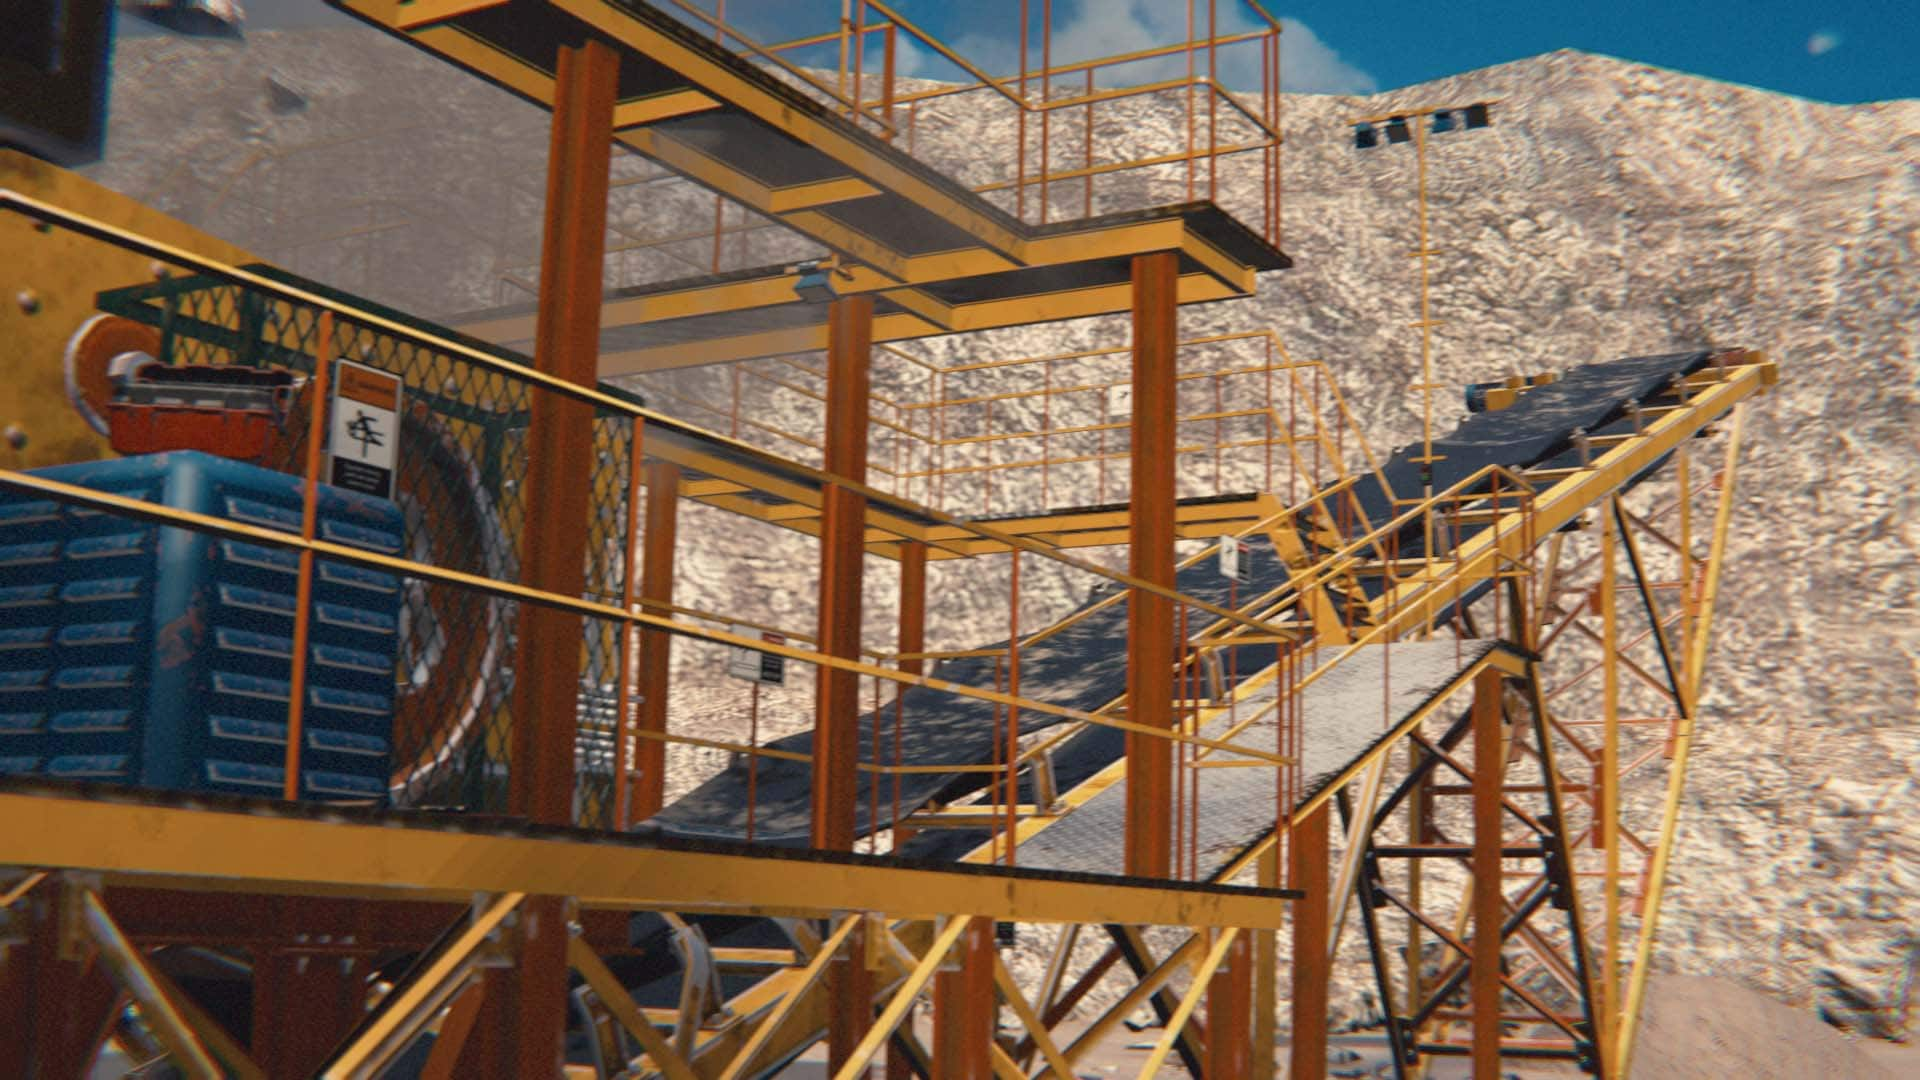 Procedural training environment for mining safety